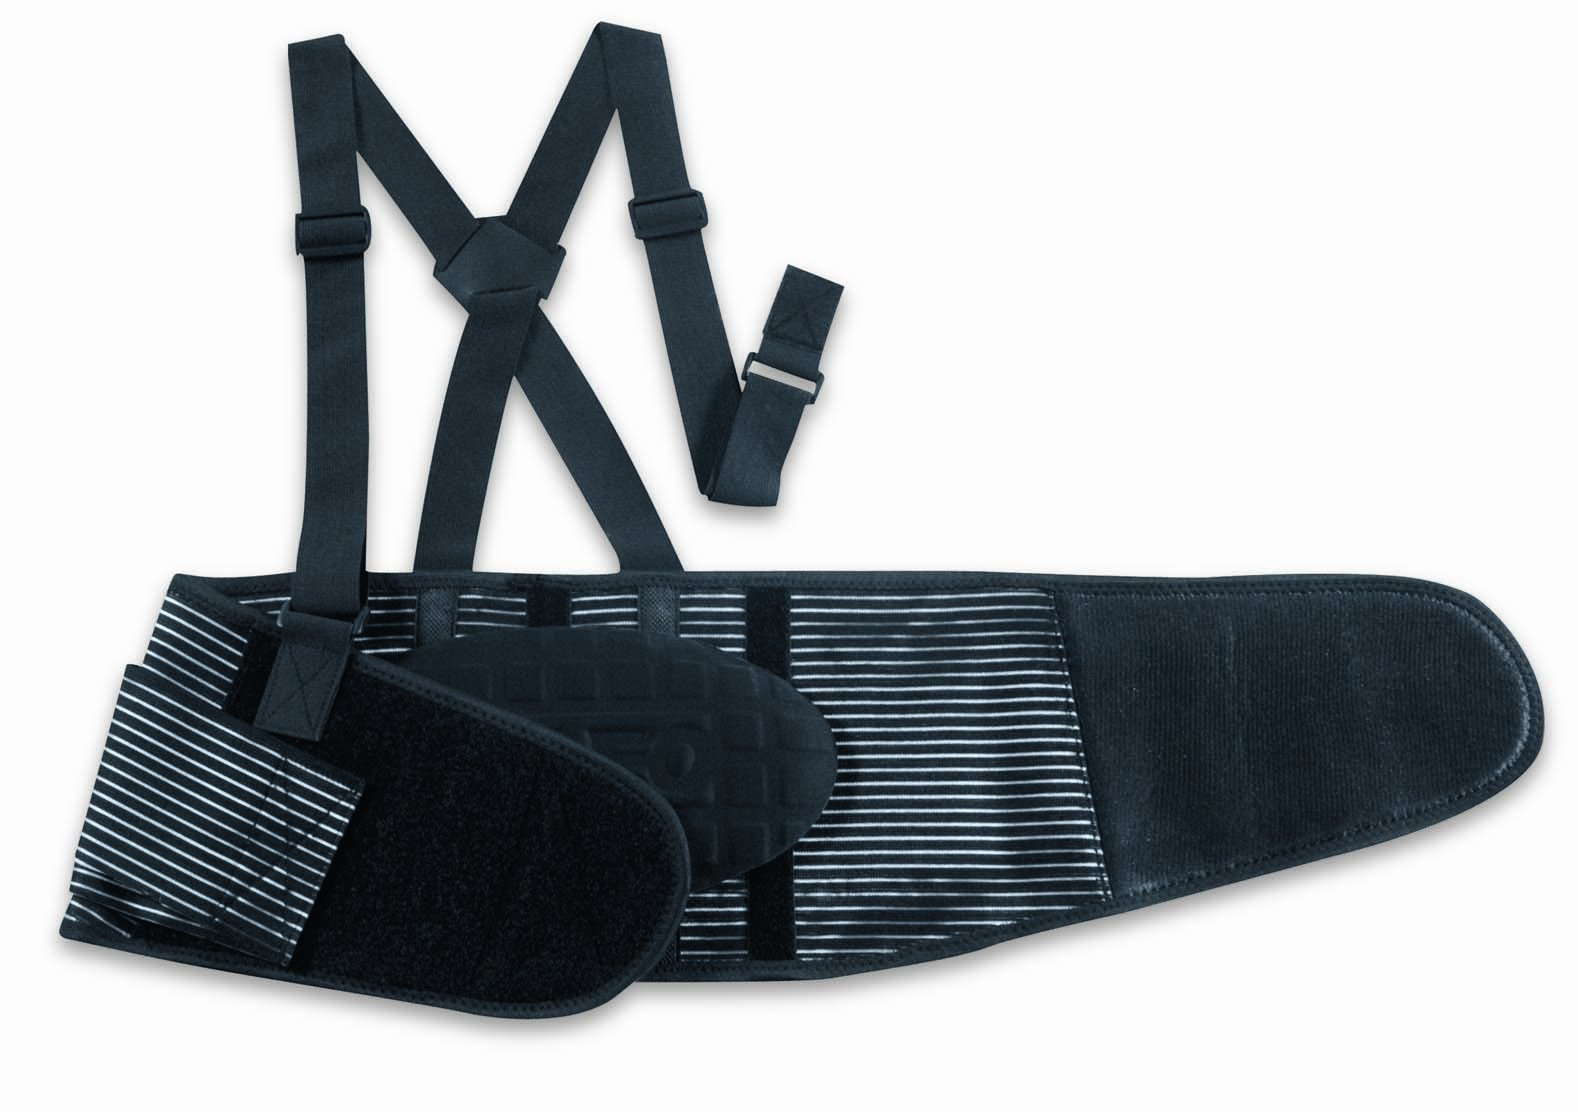 Valeo Premium 9-Inch Heavy Duty Elastic Belt With 2 Stage Hook And Loop Closure System And Quick Release 1.5-Inch Removable Suspenders And Removable Lumbar Pad, Machine Washable